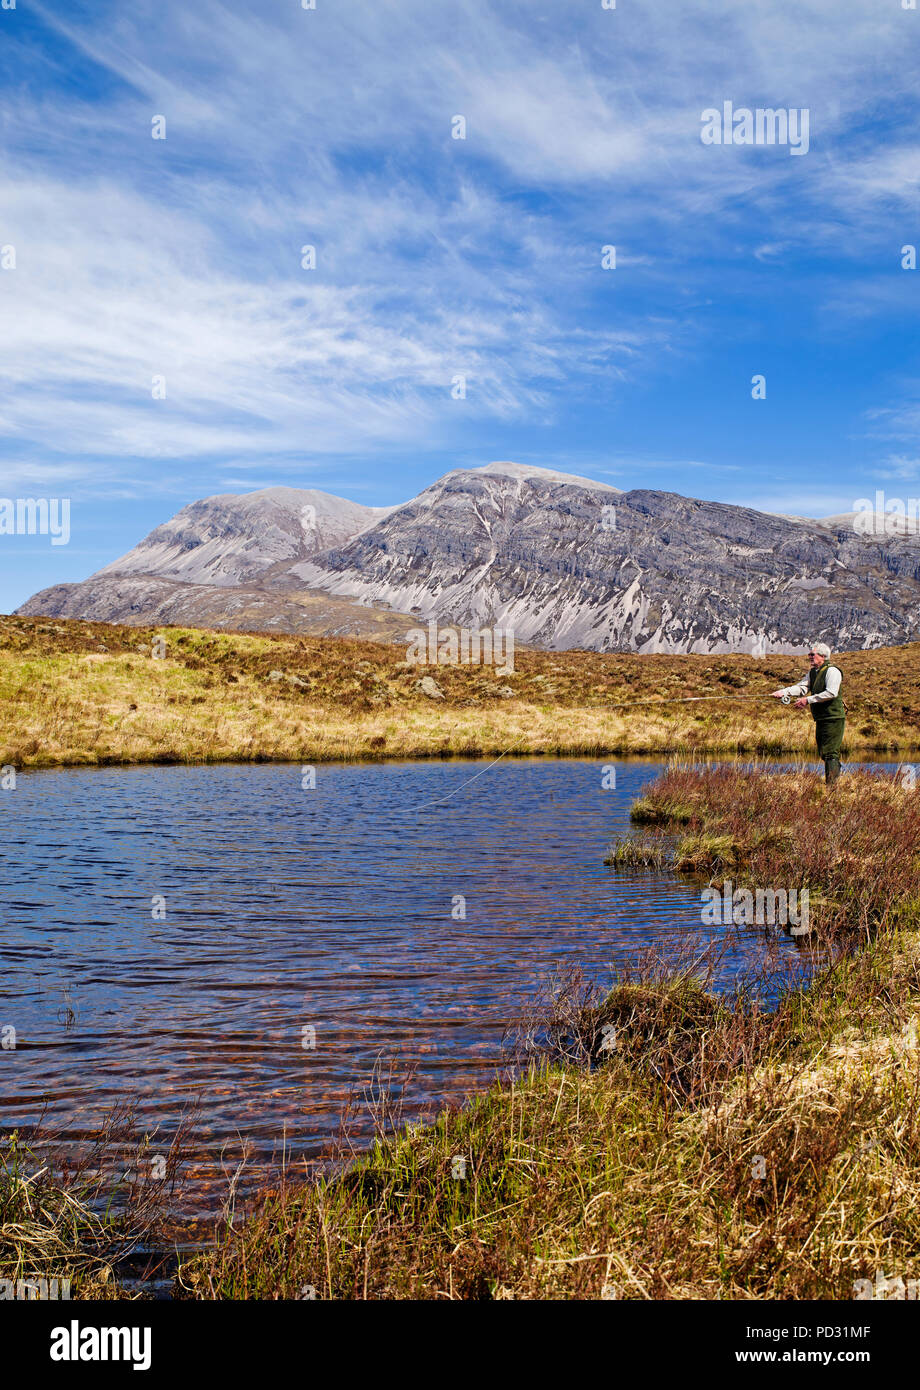 Angler fishing for wild brown trout on remote hill loch on Reay Forest Estate, Arkle in background, Sutherland, Scottish Highlands, Scotland UK. - Stock Image